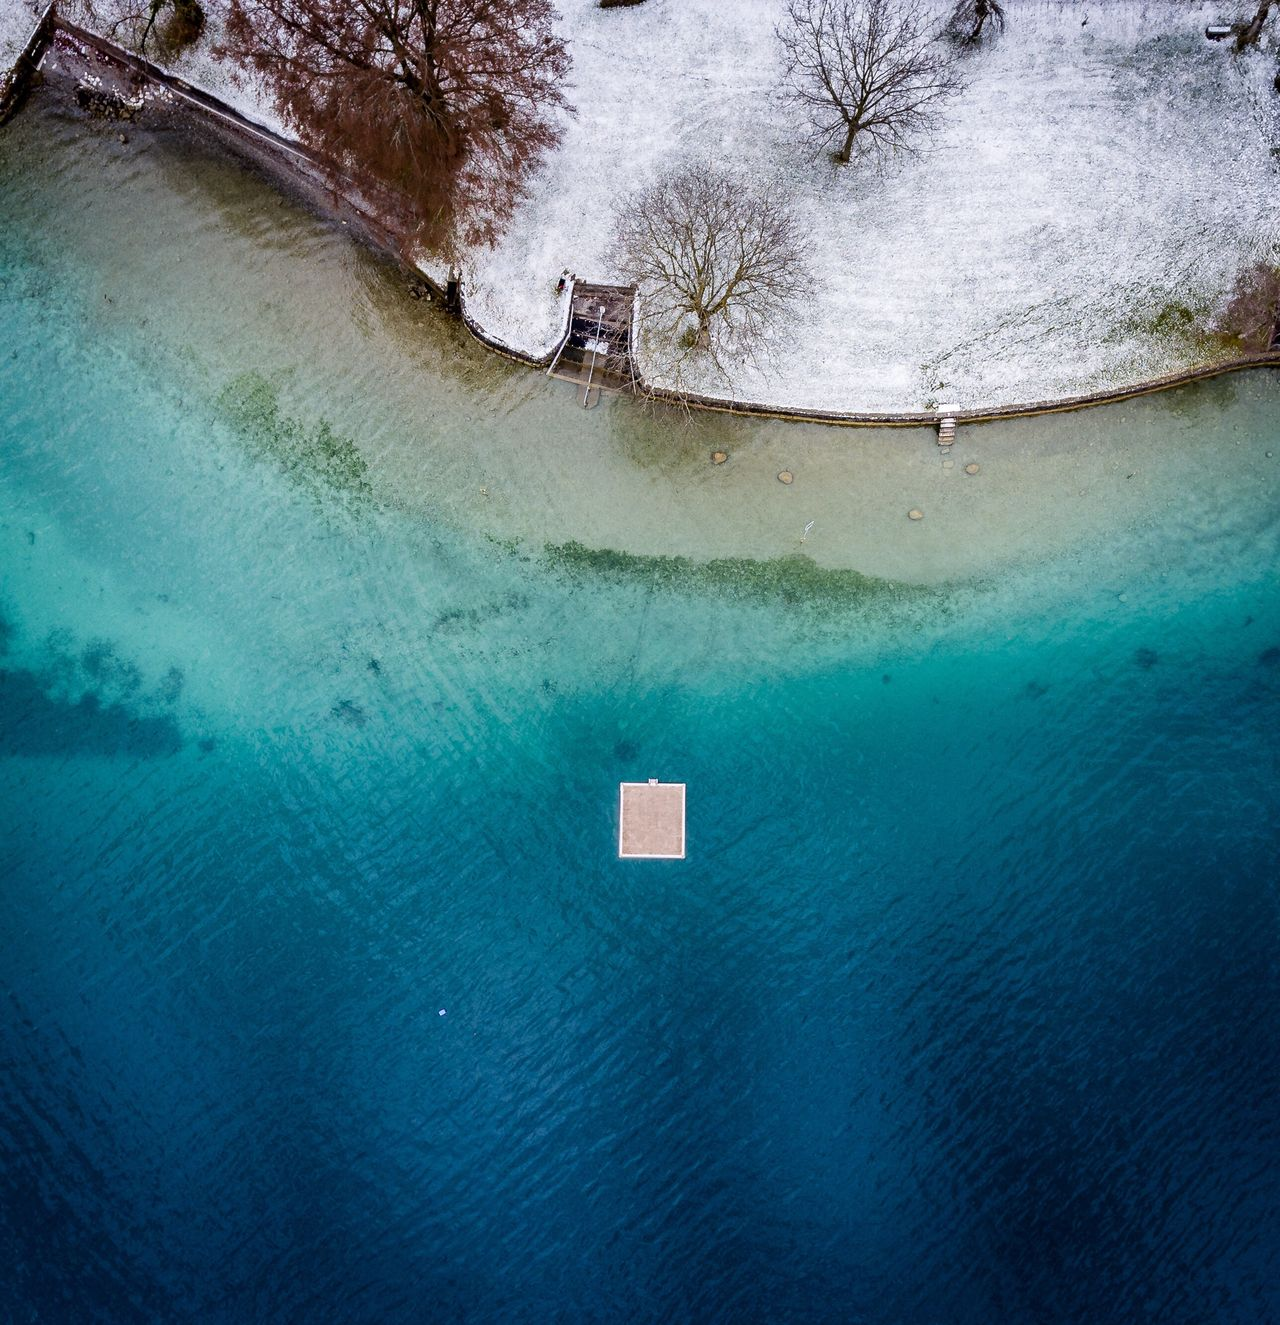 water no people day outdoors Architecture Nature raft aerial view Fresh on Market 2017